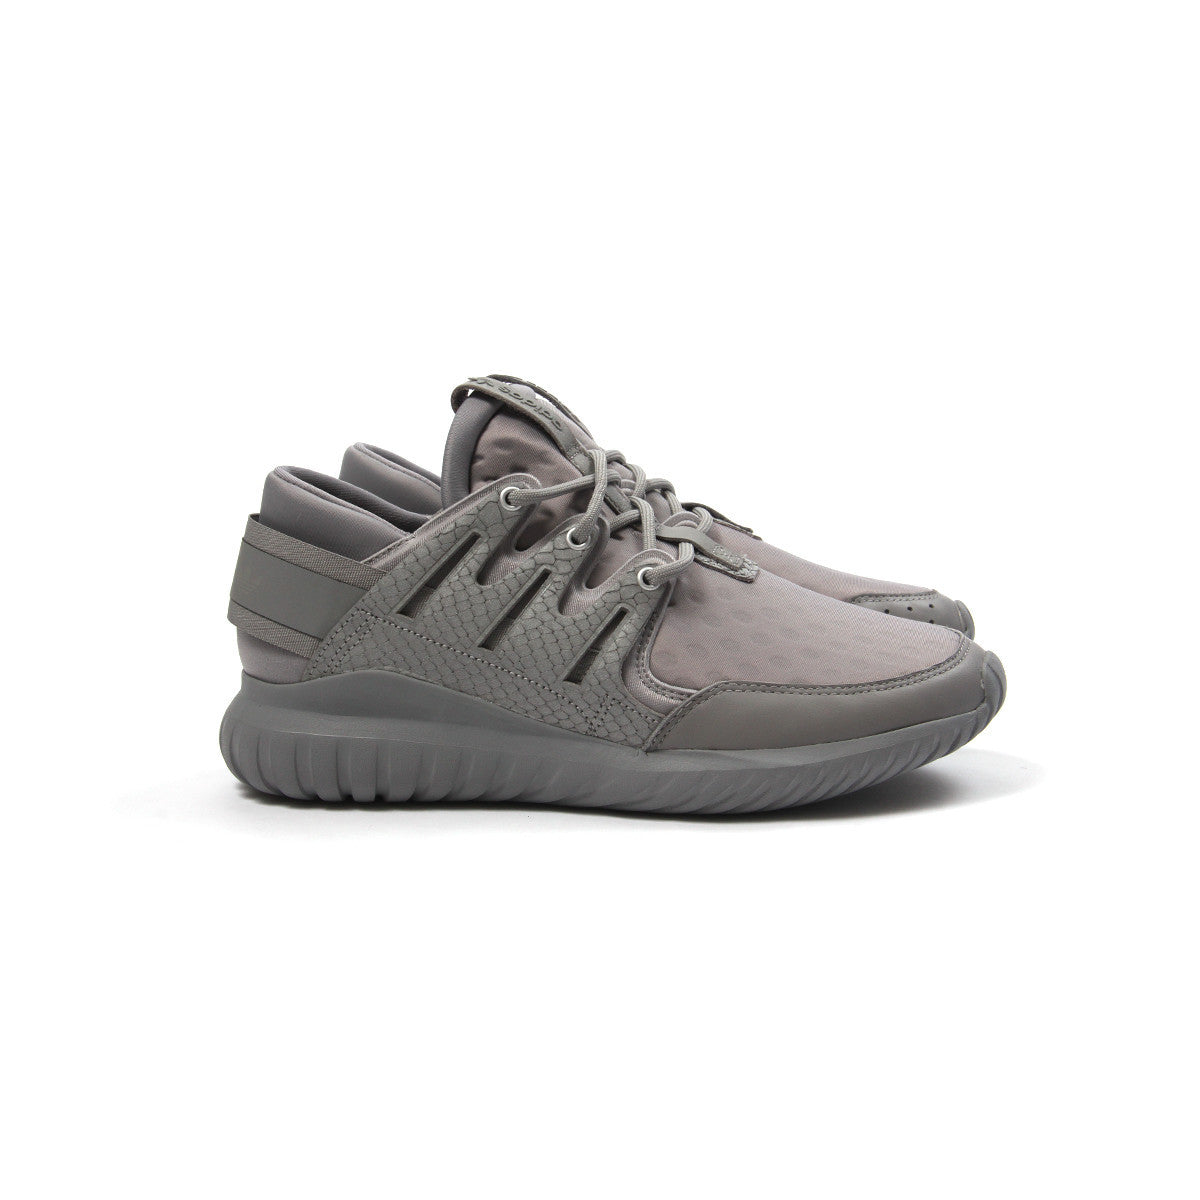 Adidas Tubular Nova Primeknit 'Olive' / Available Now Yeezys Sale